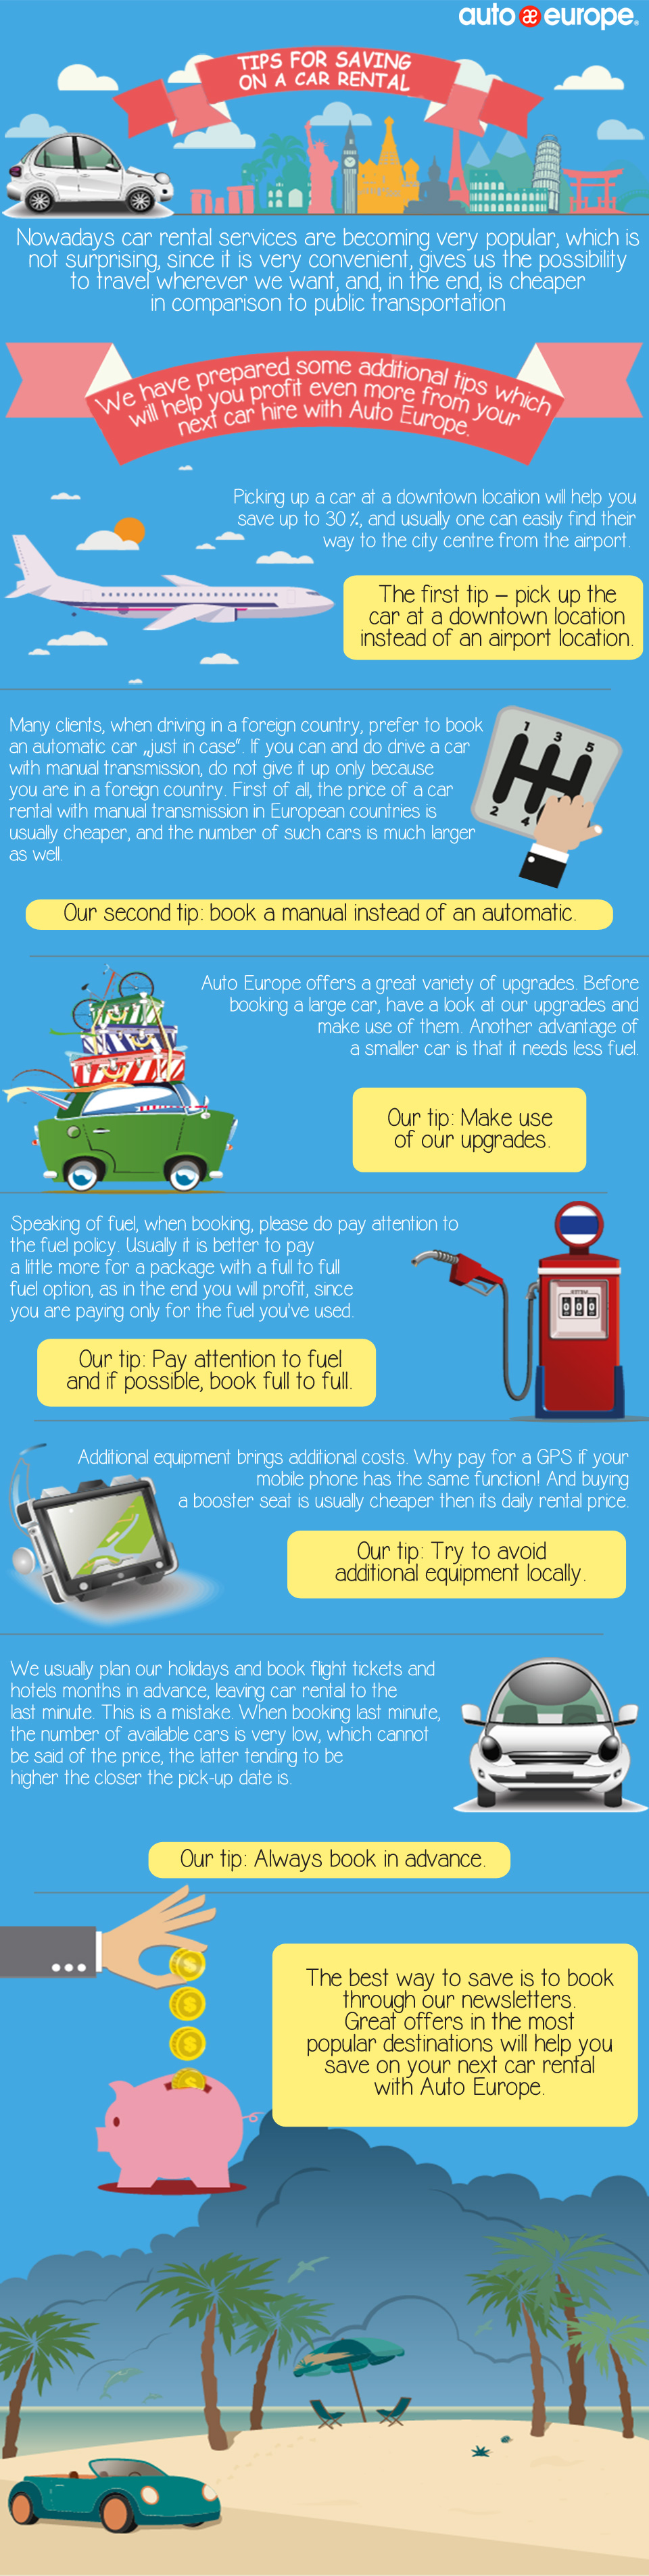 Tips for Saving on a Car Rental